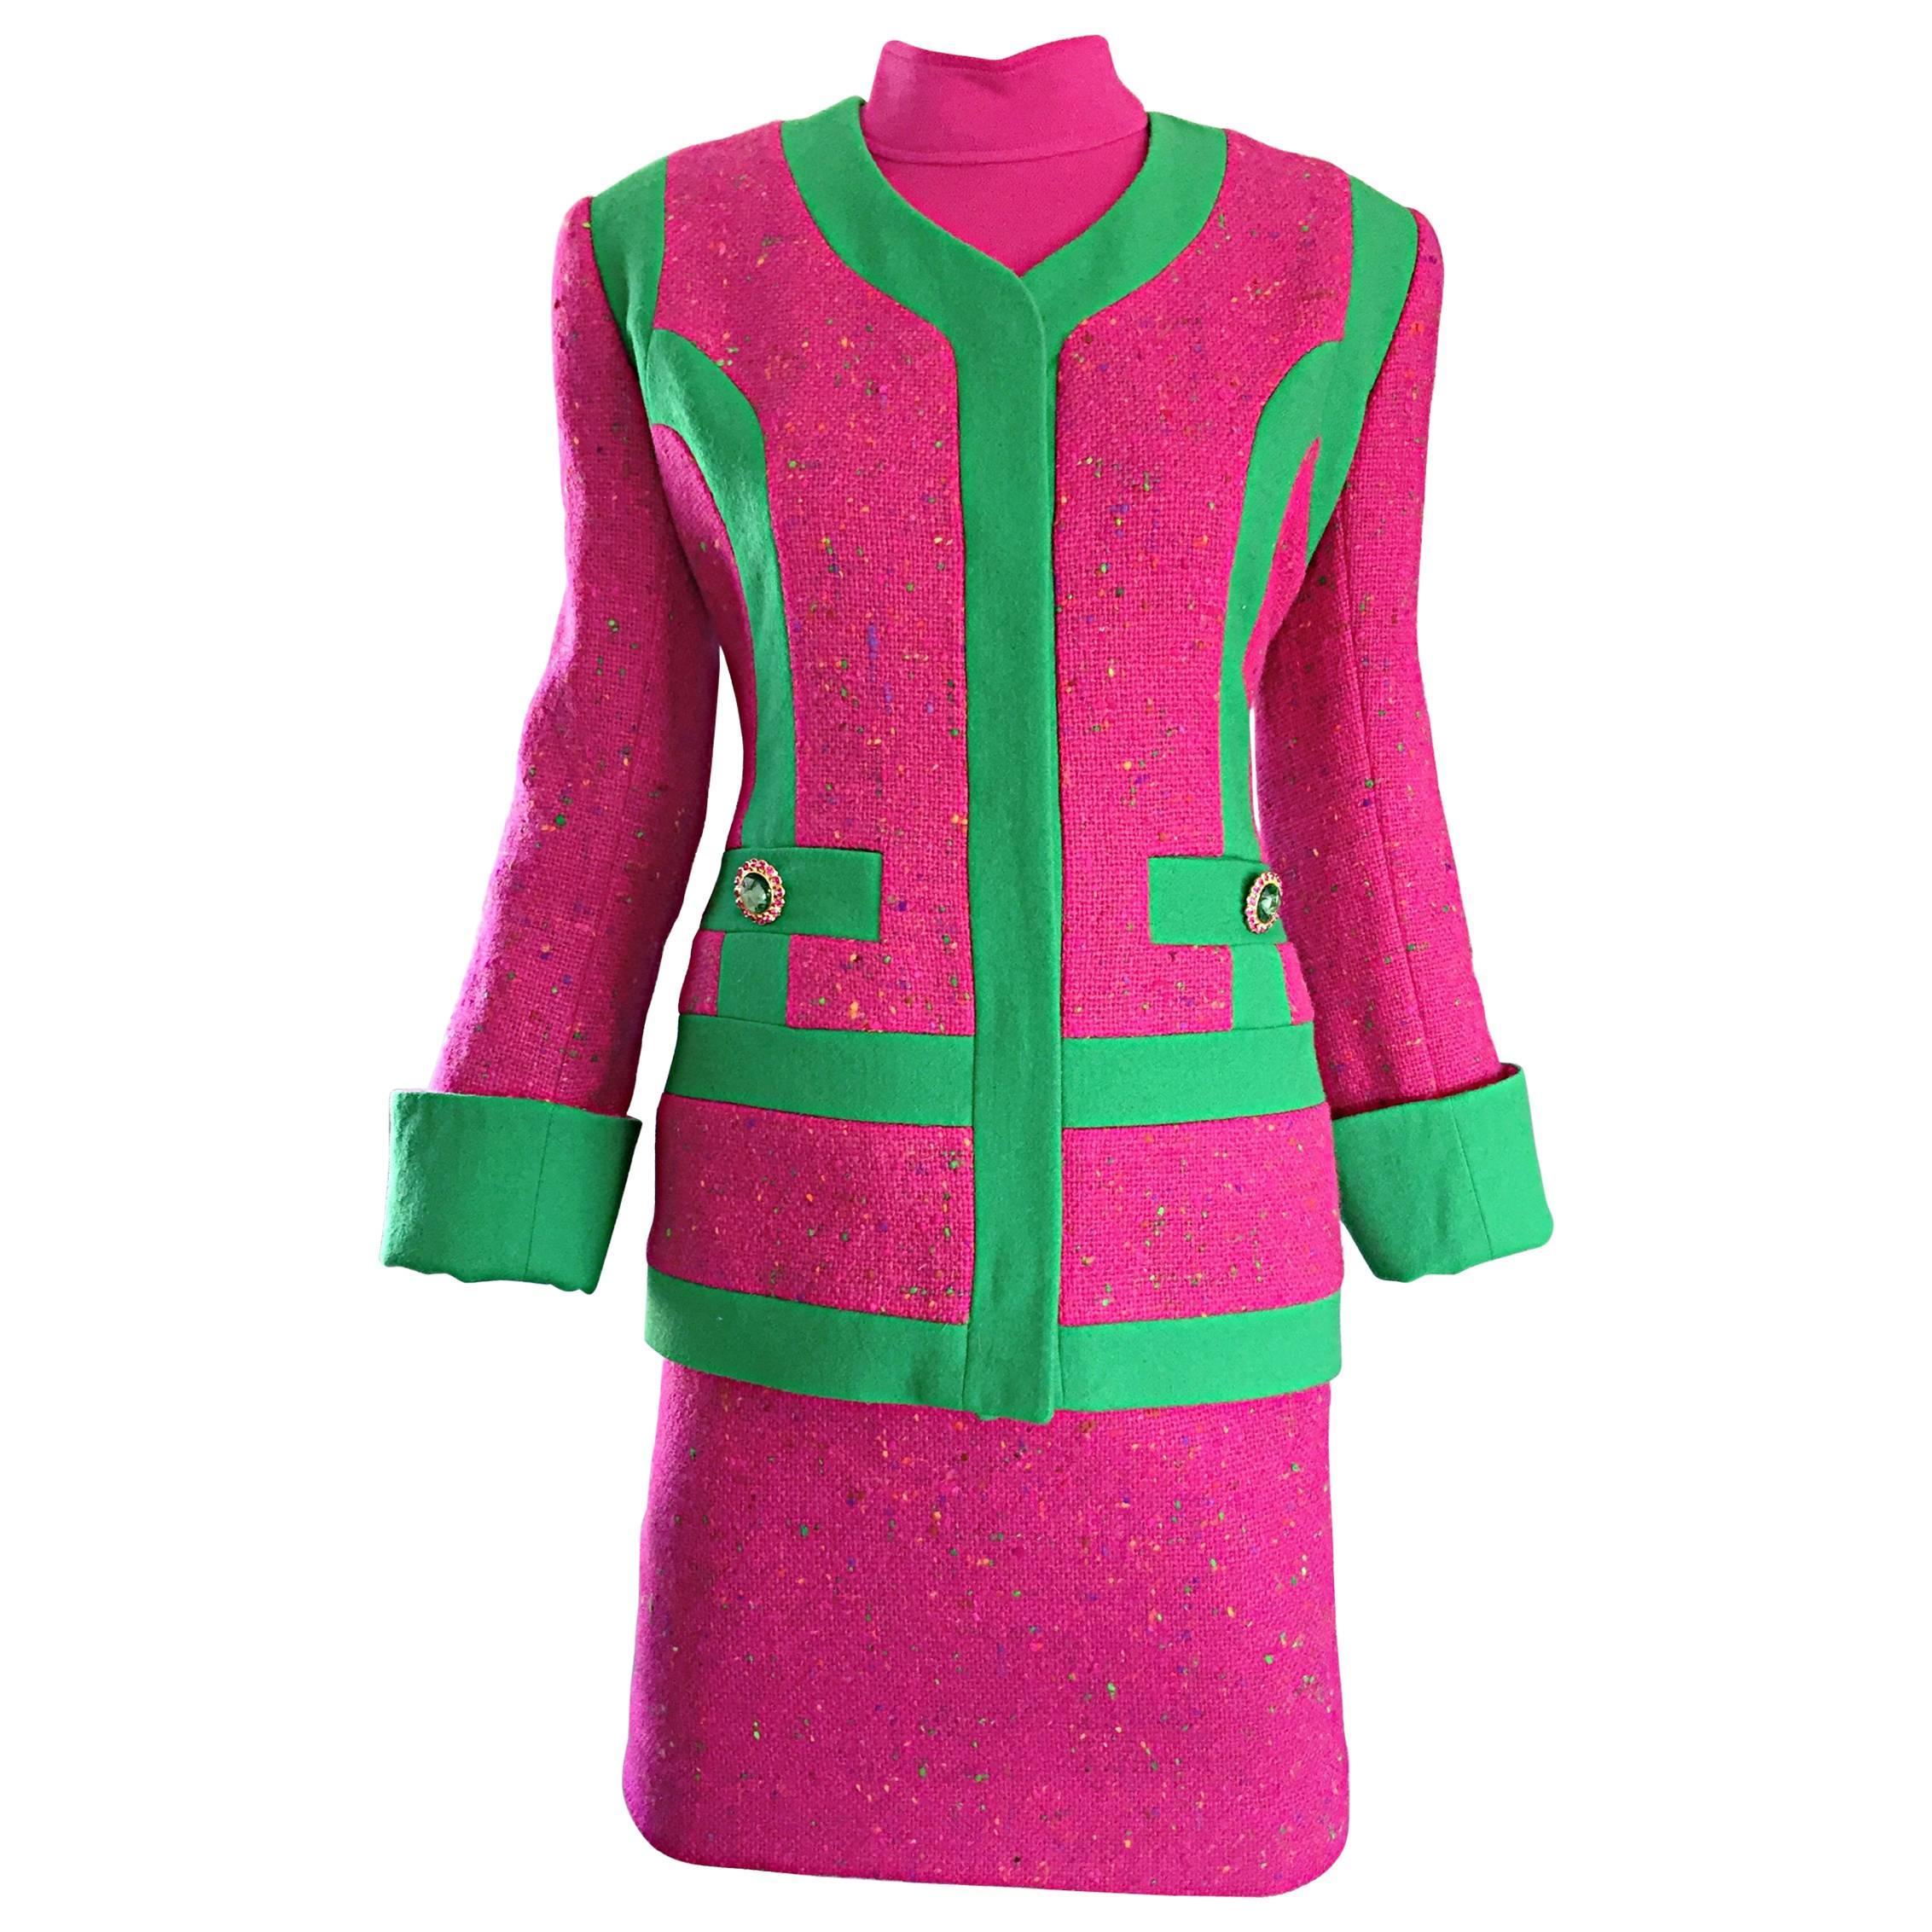 1990s Gemma Kahng Rare Vintage 3 Piece 90s Skirt Suit In Hot Pink and Green